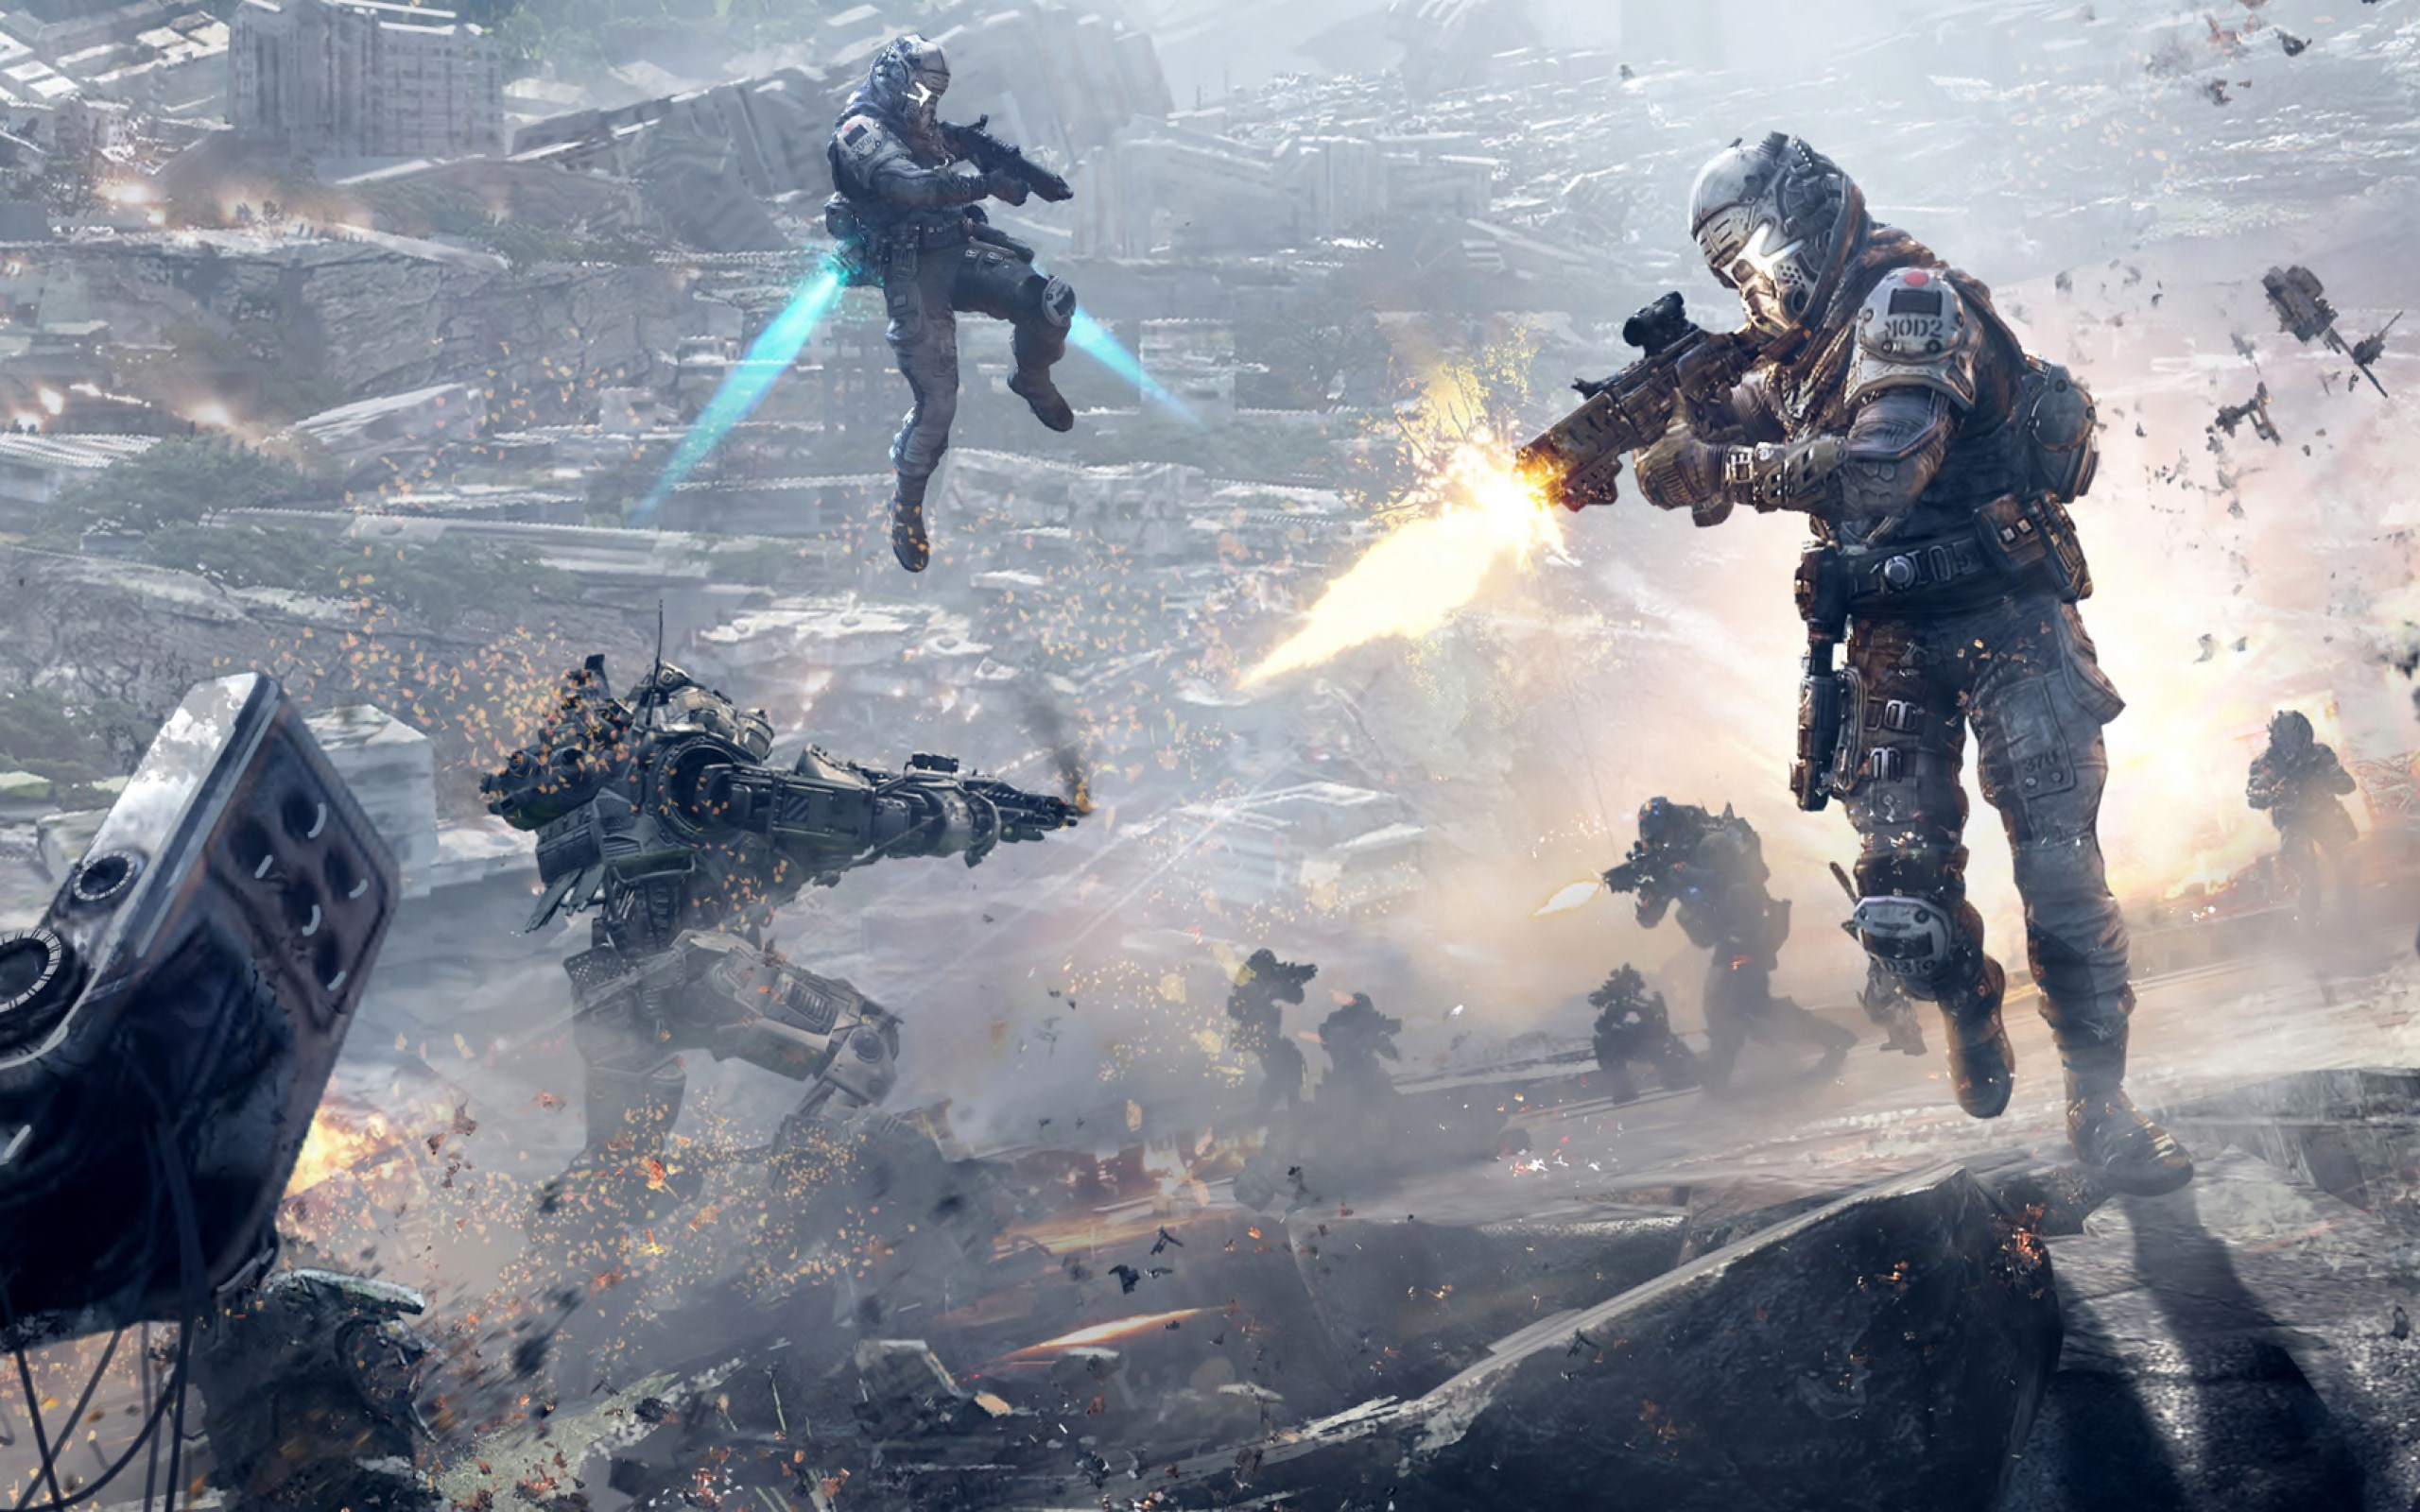 Titanfall Wallpaper Hd Titanfall Full Hd Wallpaper And Background Image